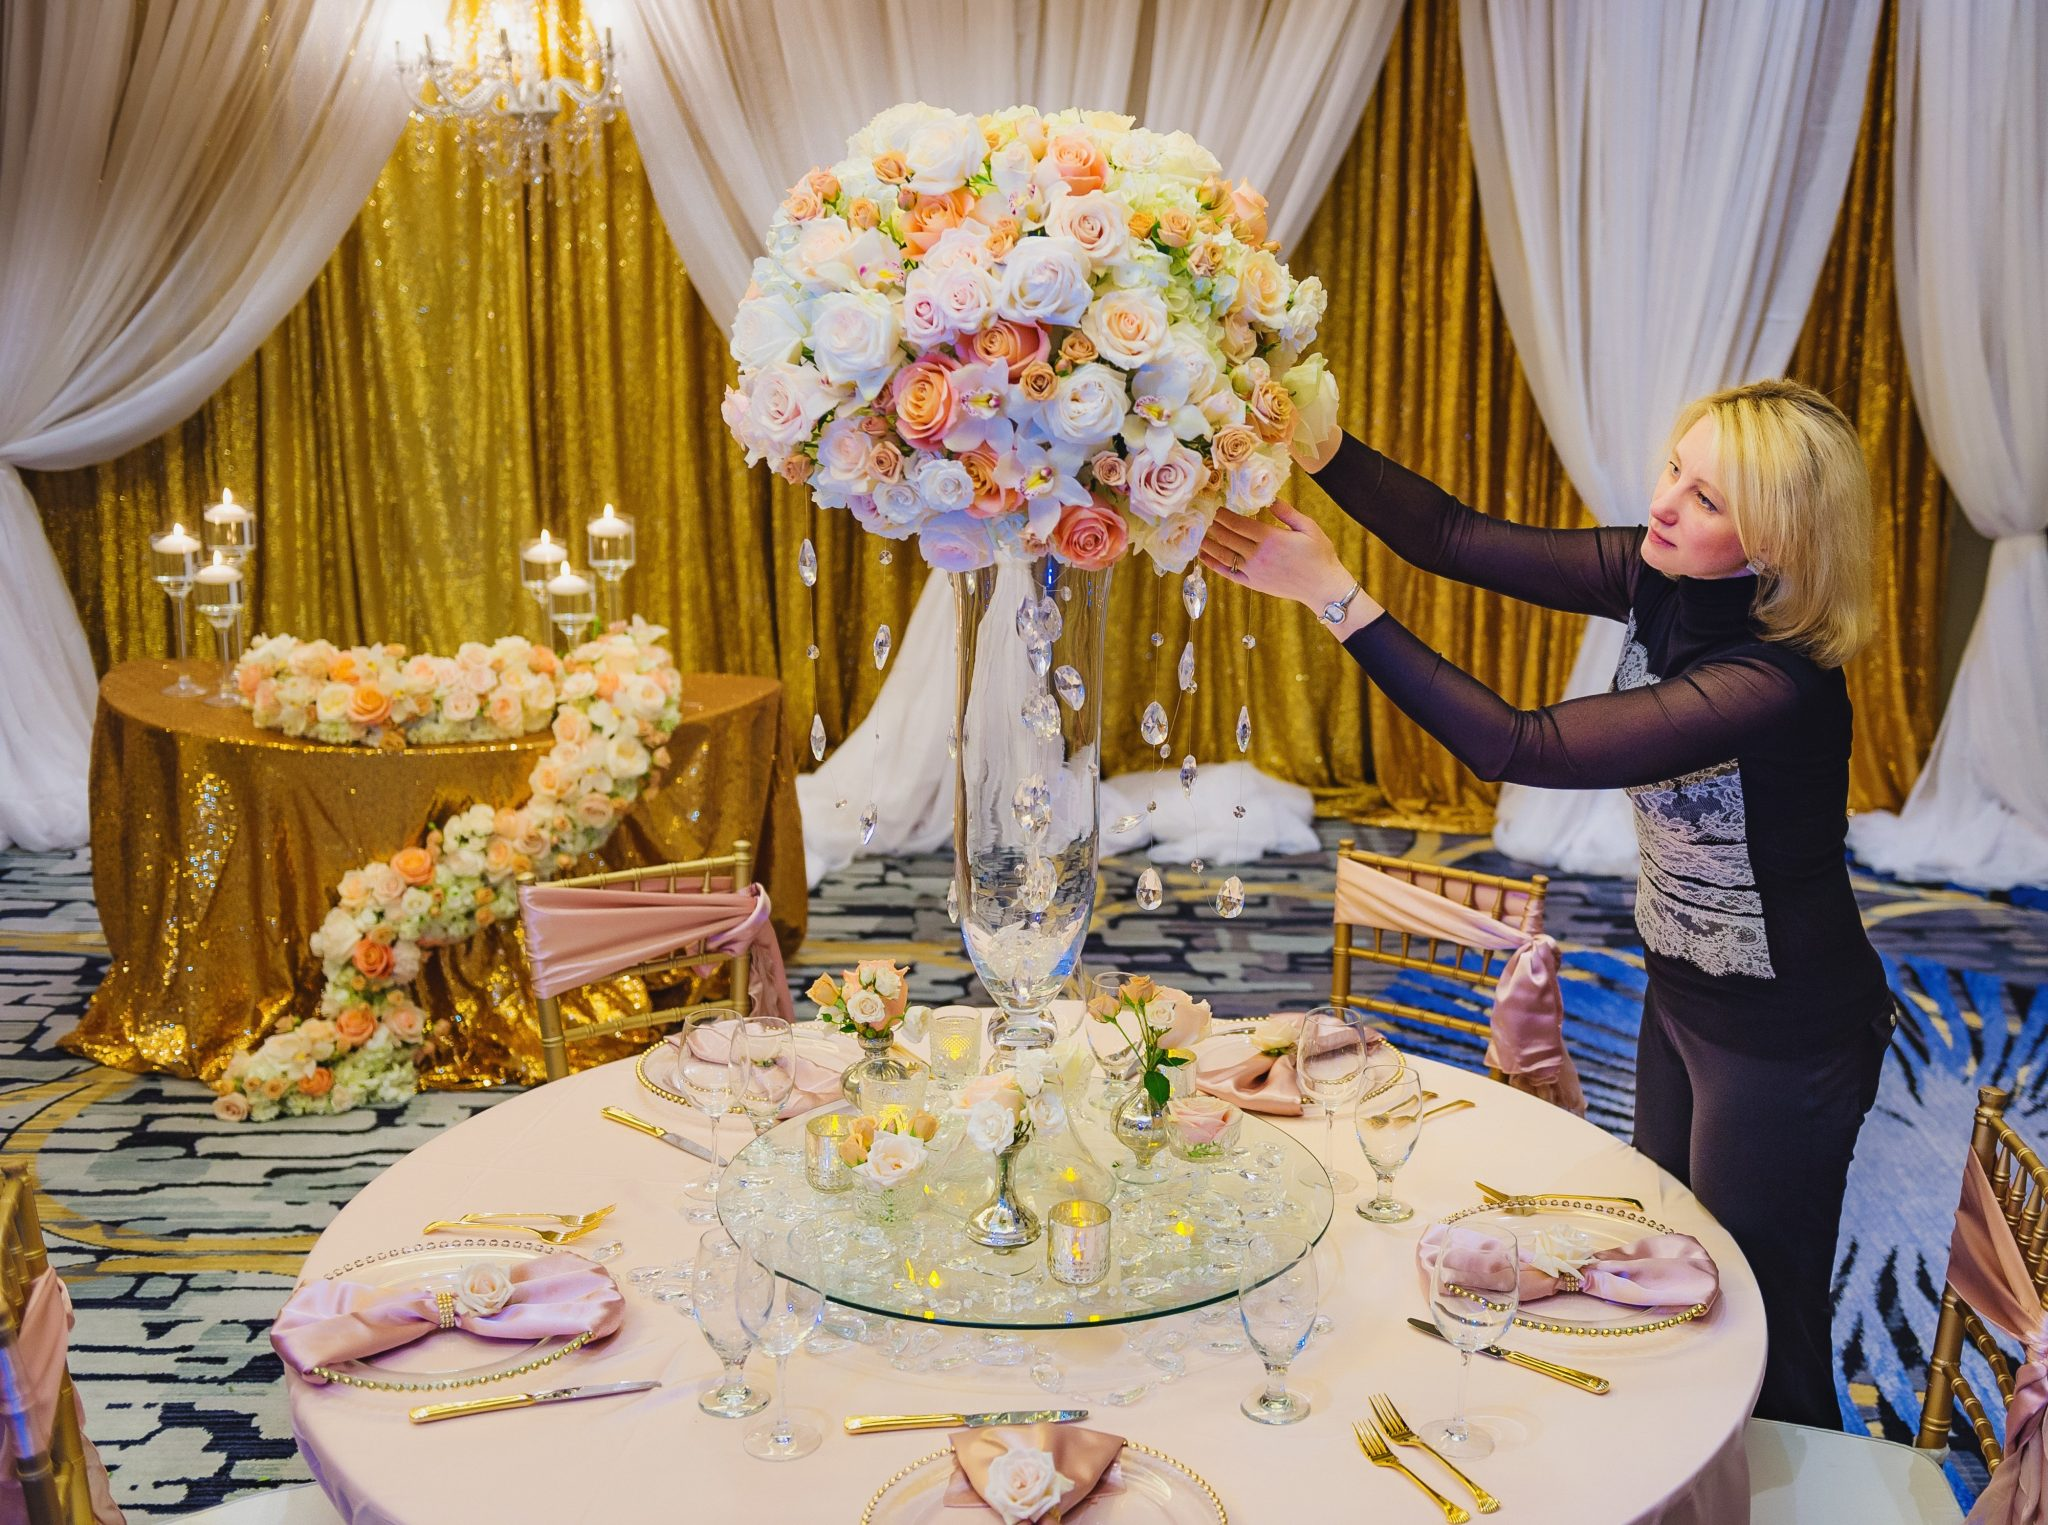 Seattle floral Design Lana Spagnoli arranging centerpiece flowers